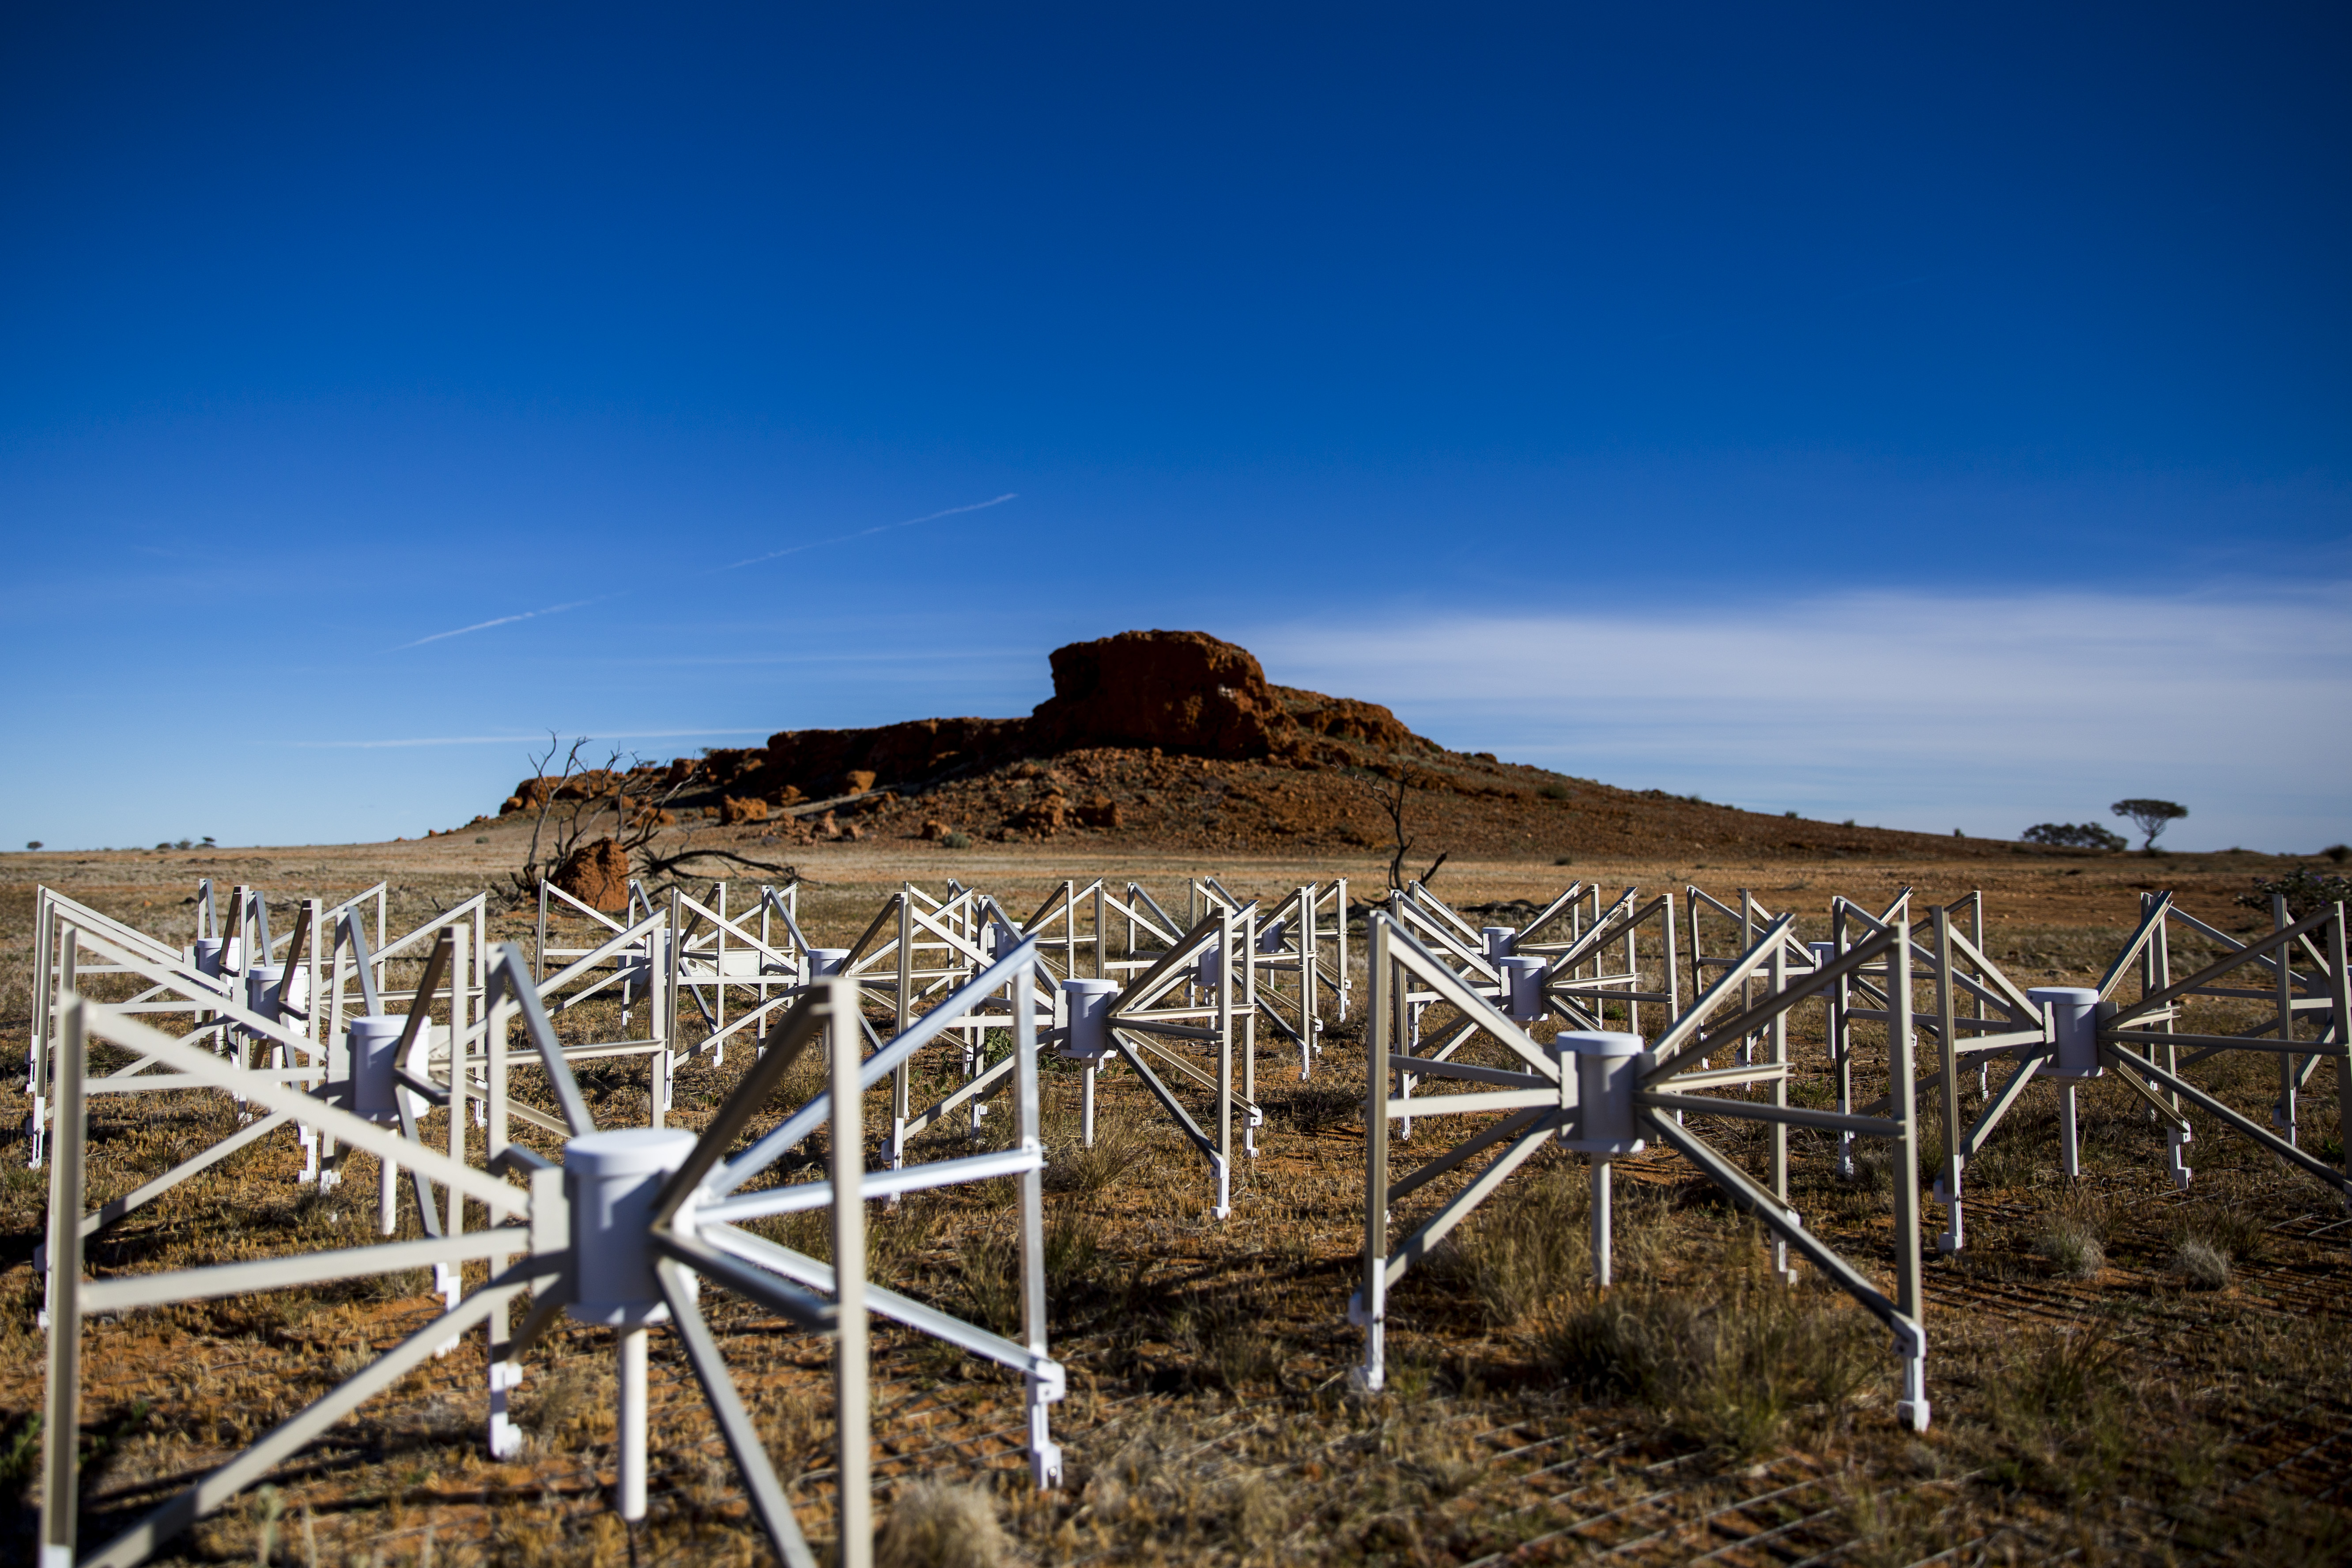 Group of short metal spider-like antennas in foreground with small red hill and blue sky in background